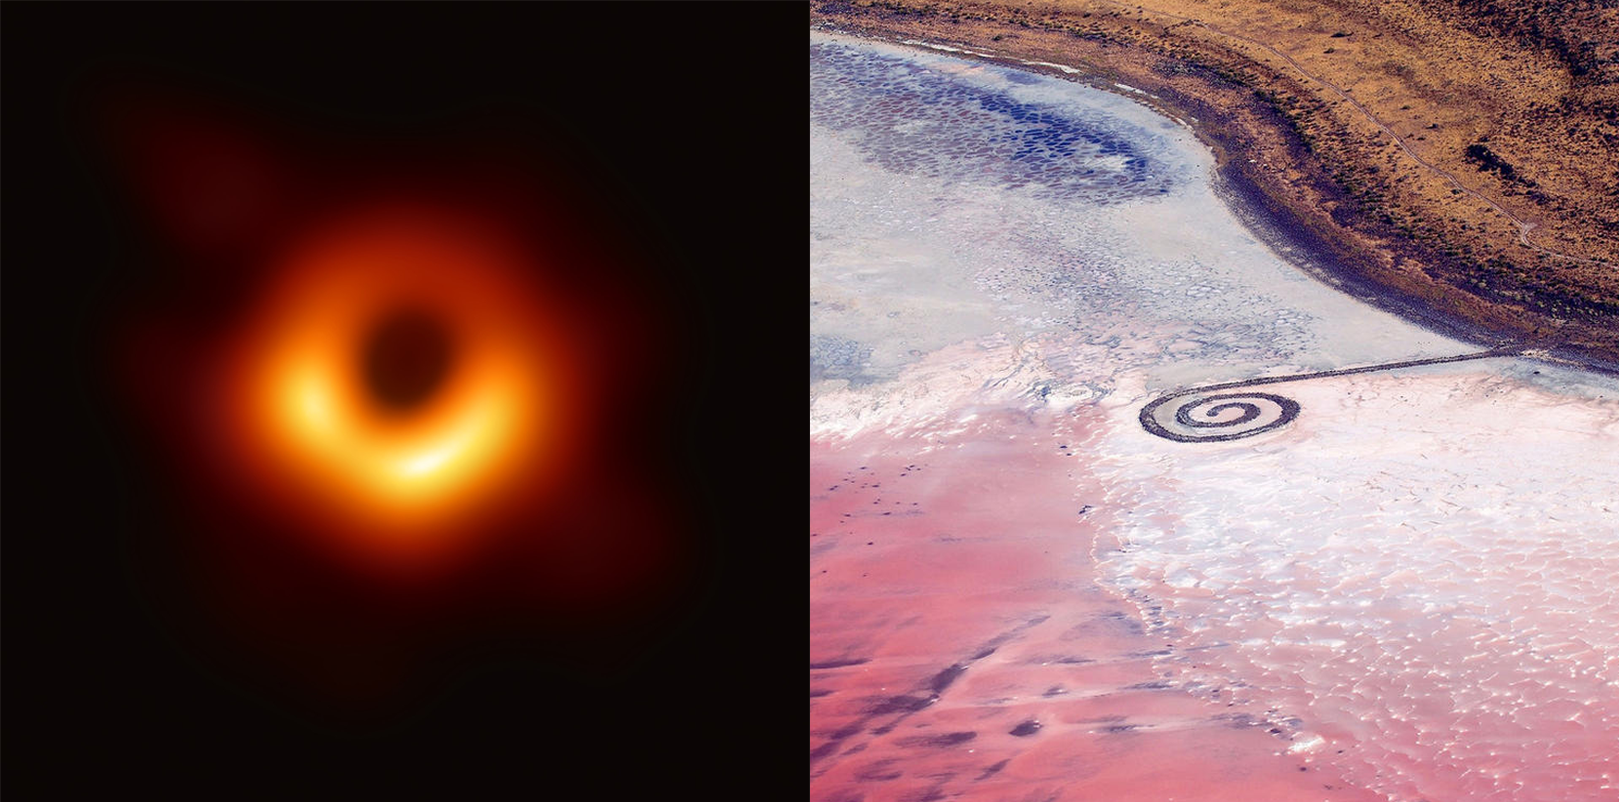 To see more about the  black hole  and  spiral jetty …